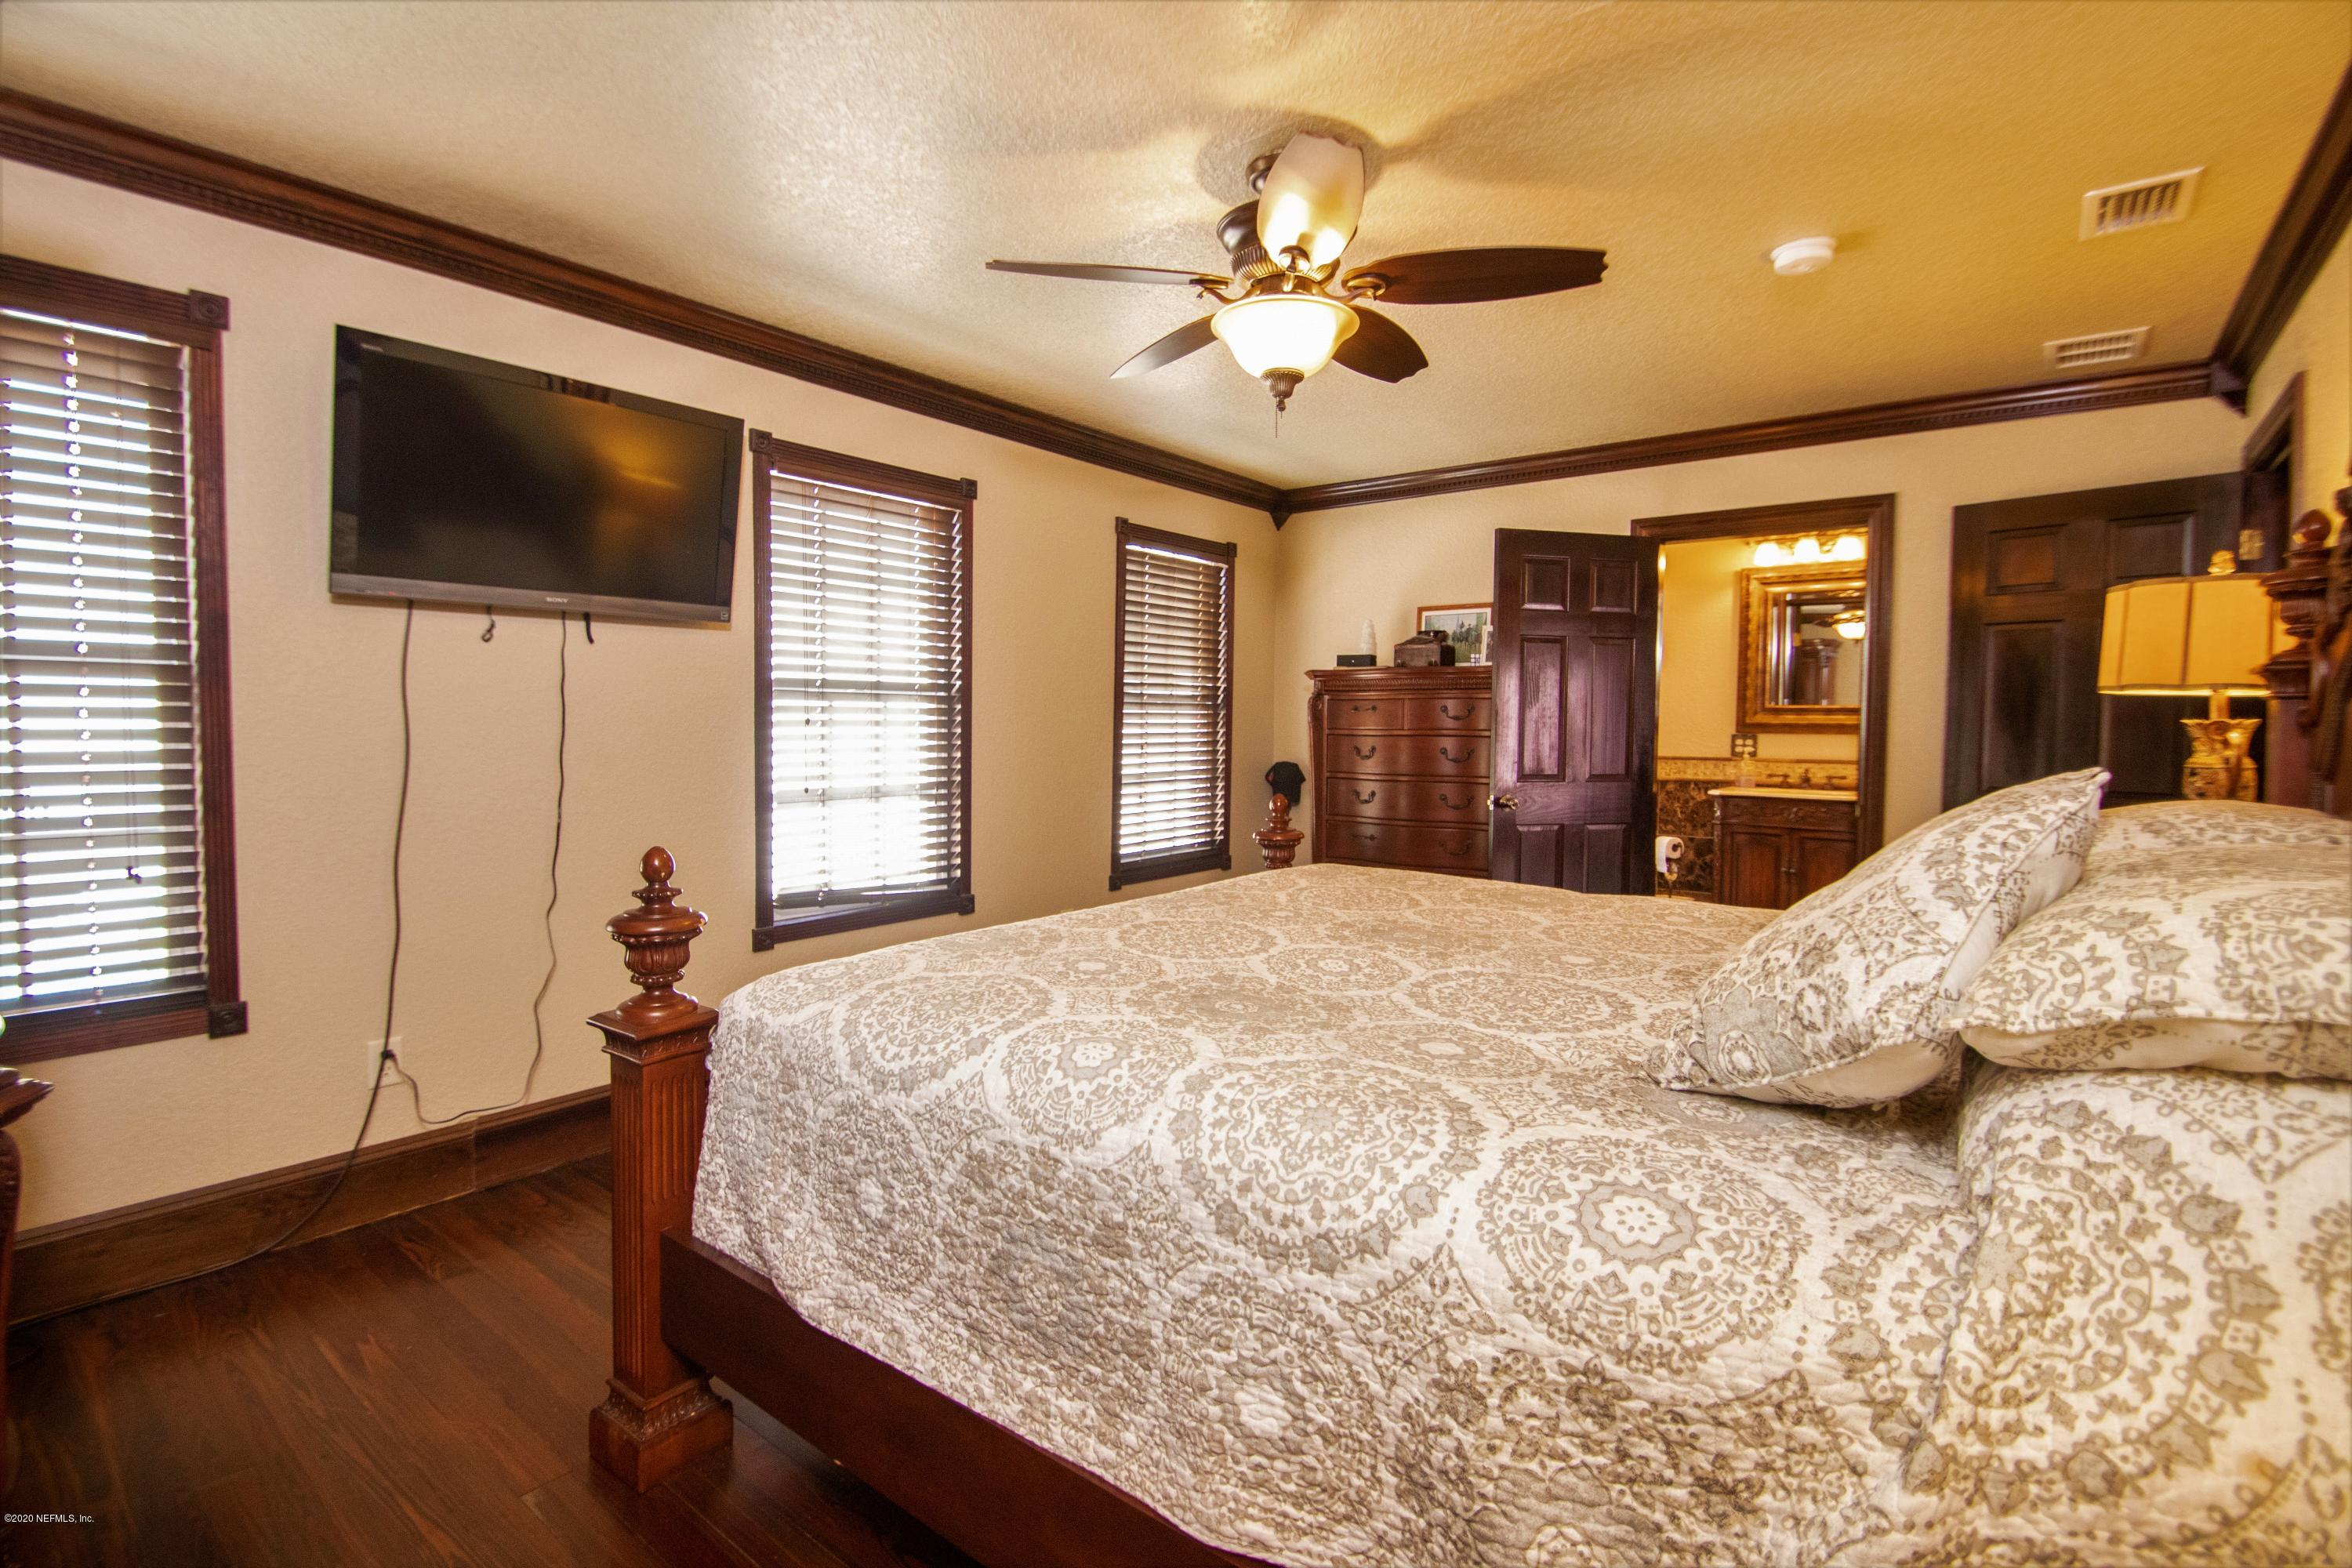 101 CALL, STARKE, FLORIDA 32091, 4 Bedrooms Bedrooms, ,3 BathroomsBathrooms,Residential,For sale,CALL,1058260